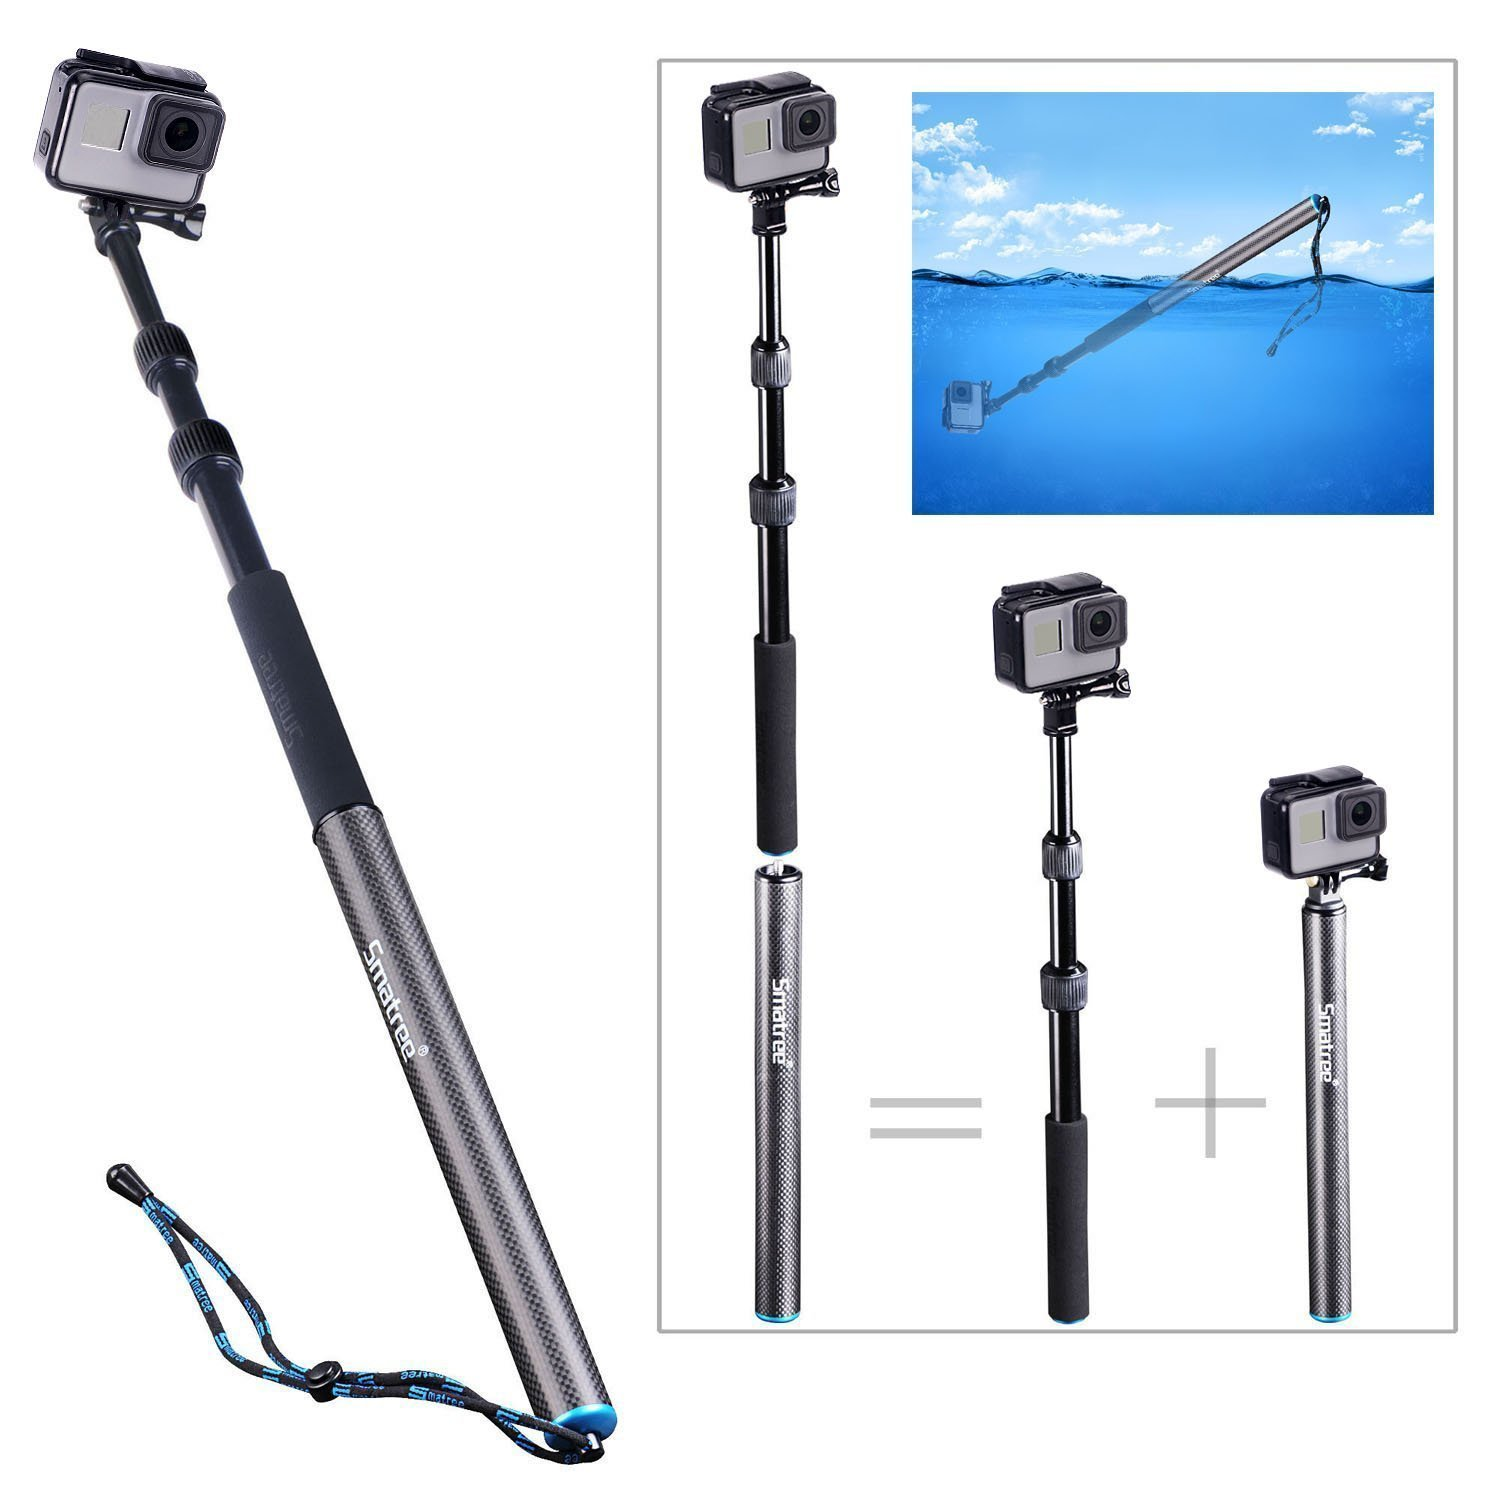 Smatree S3 Detachable Extendable Floating Pole for GoPro Hero Fusion/6/5/4/3+/3/2/1/Session/GOPRO HERO (2018),Action Cameras,HD Cameras